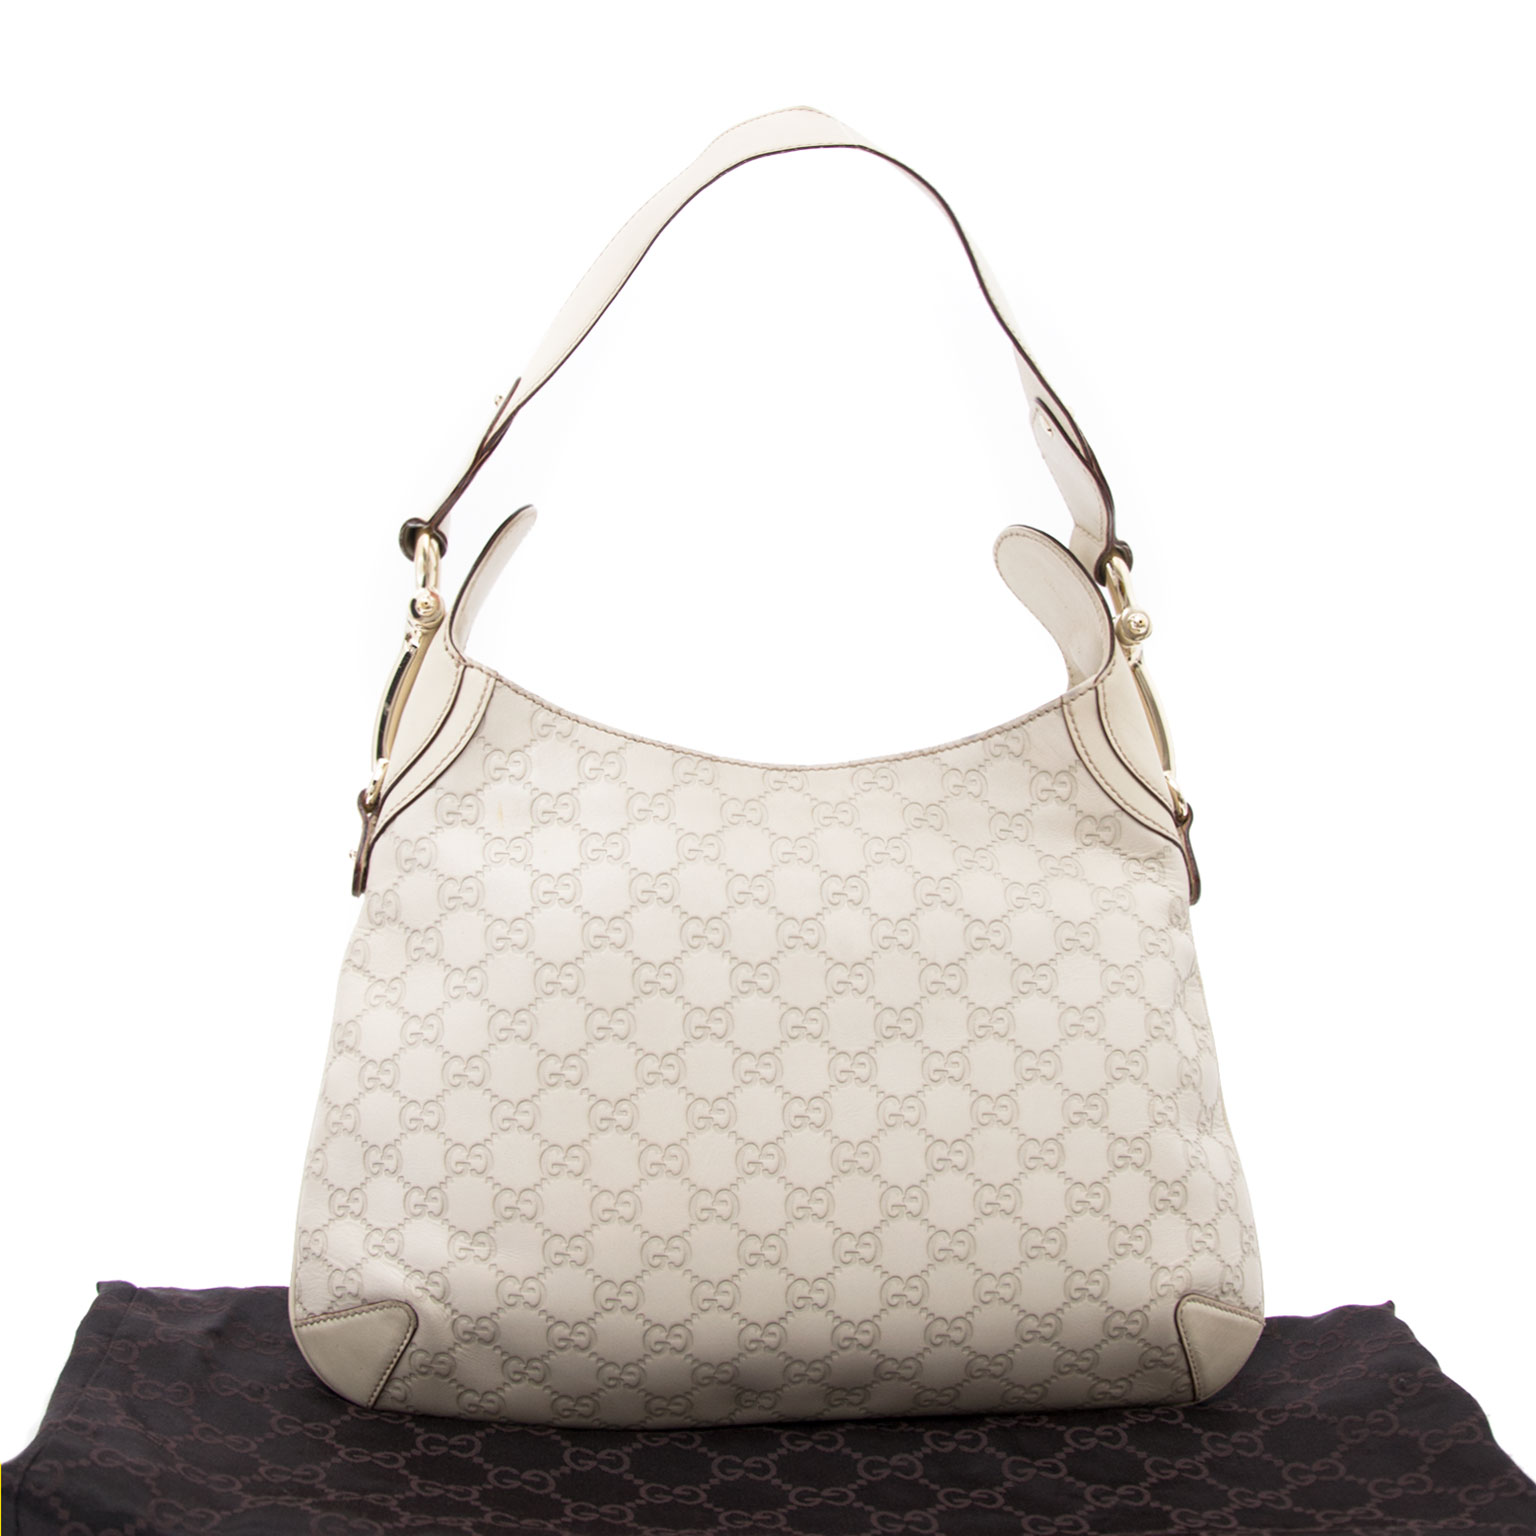 buy safe and secure online at labellov.com for the best price gucci cream monogram horsebit bag